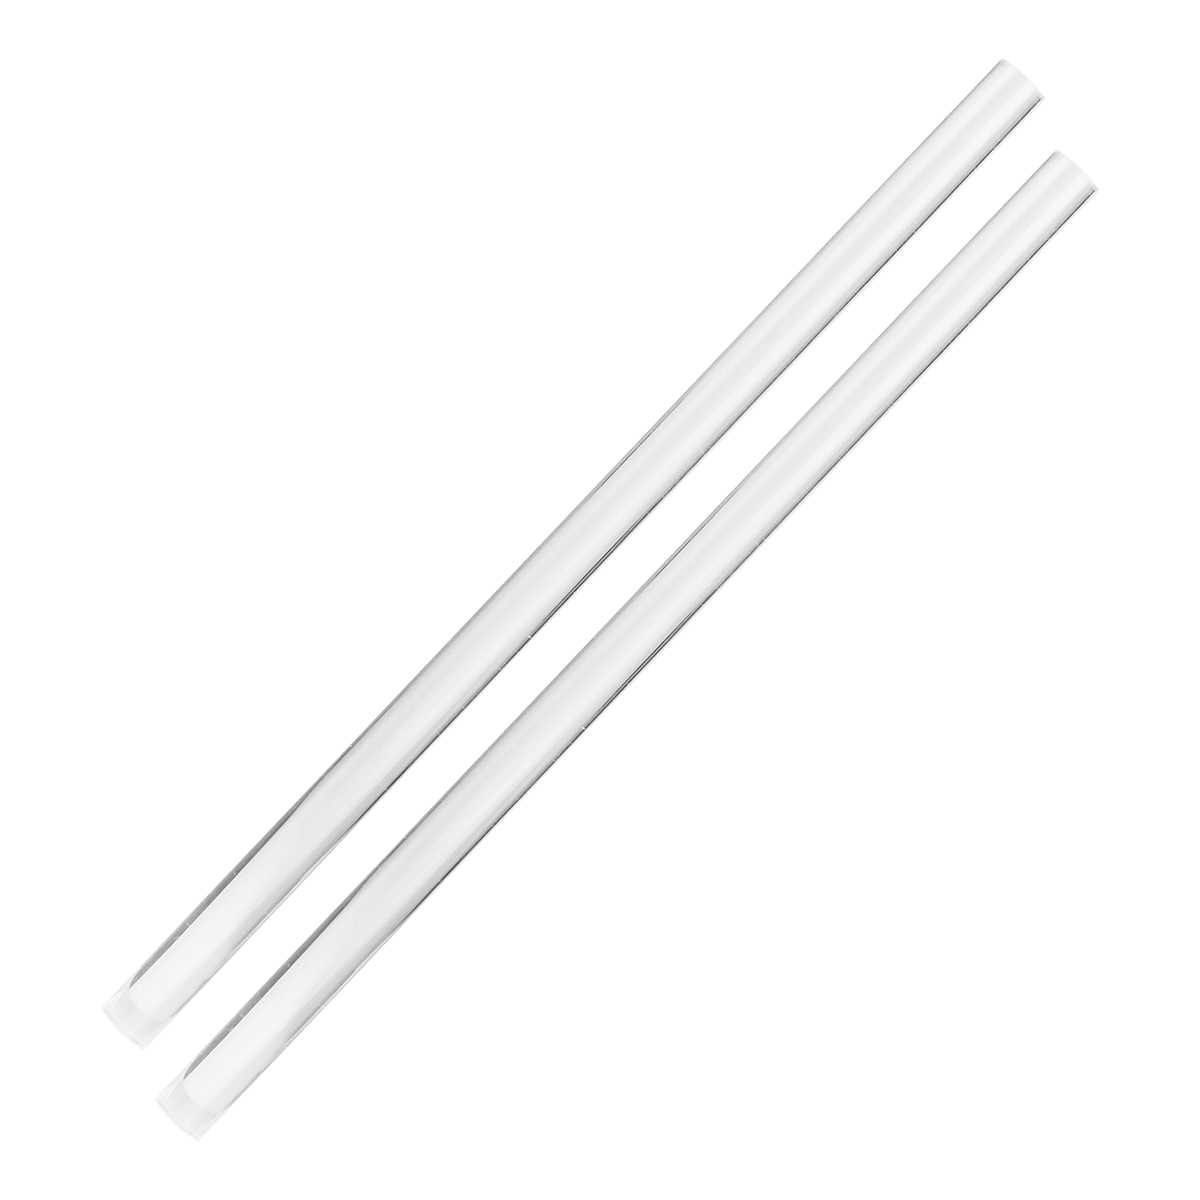 20pcs Od15x1000mm Acrylic Clear Rod Extruded Home